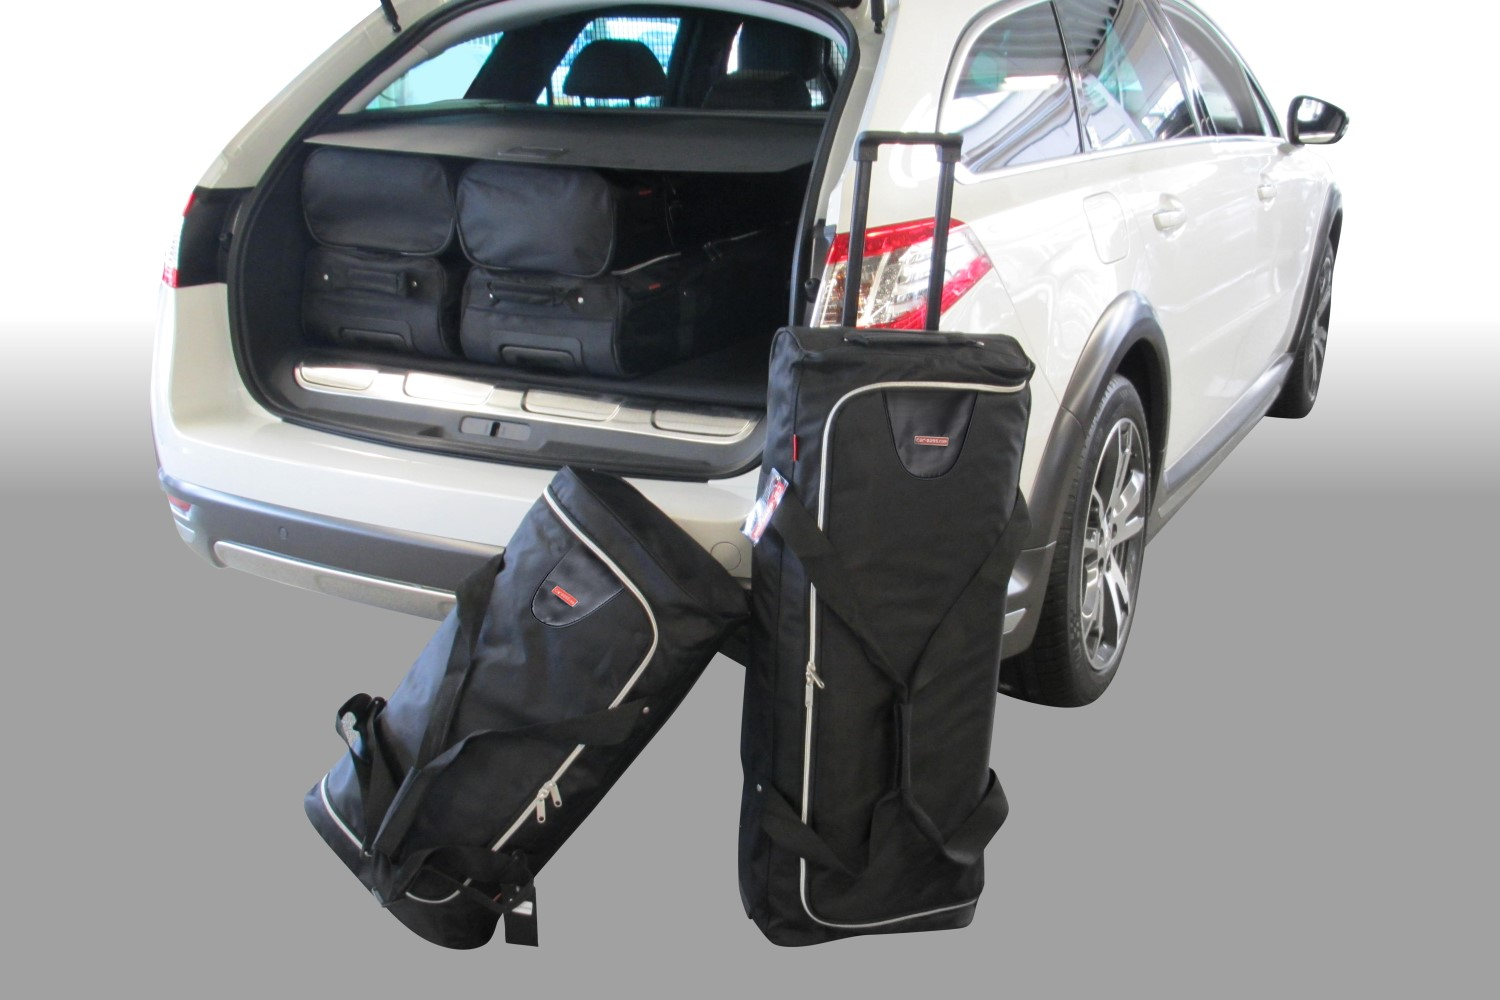 Peugeot 508 RXH HYbrid4 2012- wagon Car-Bags.com travel bag set (1)